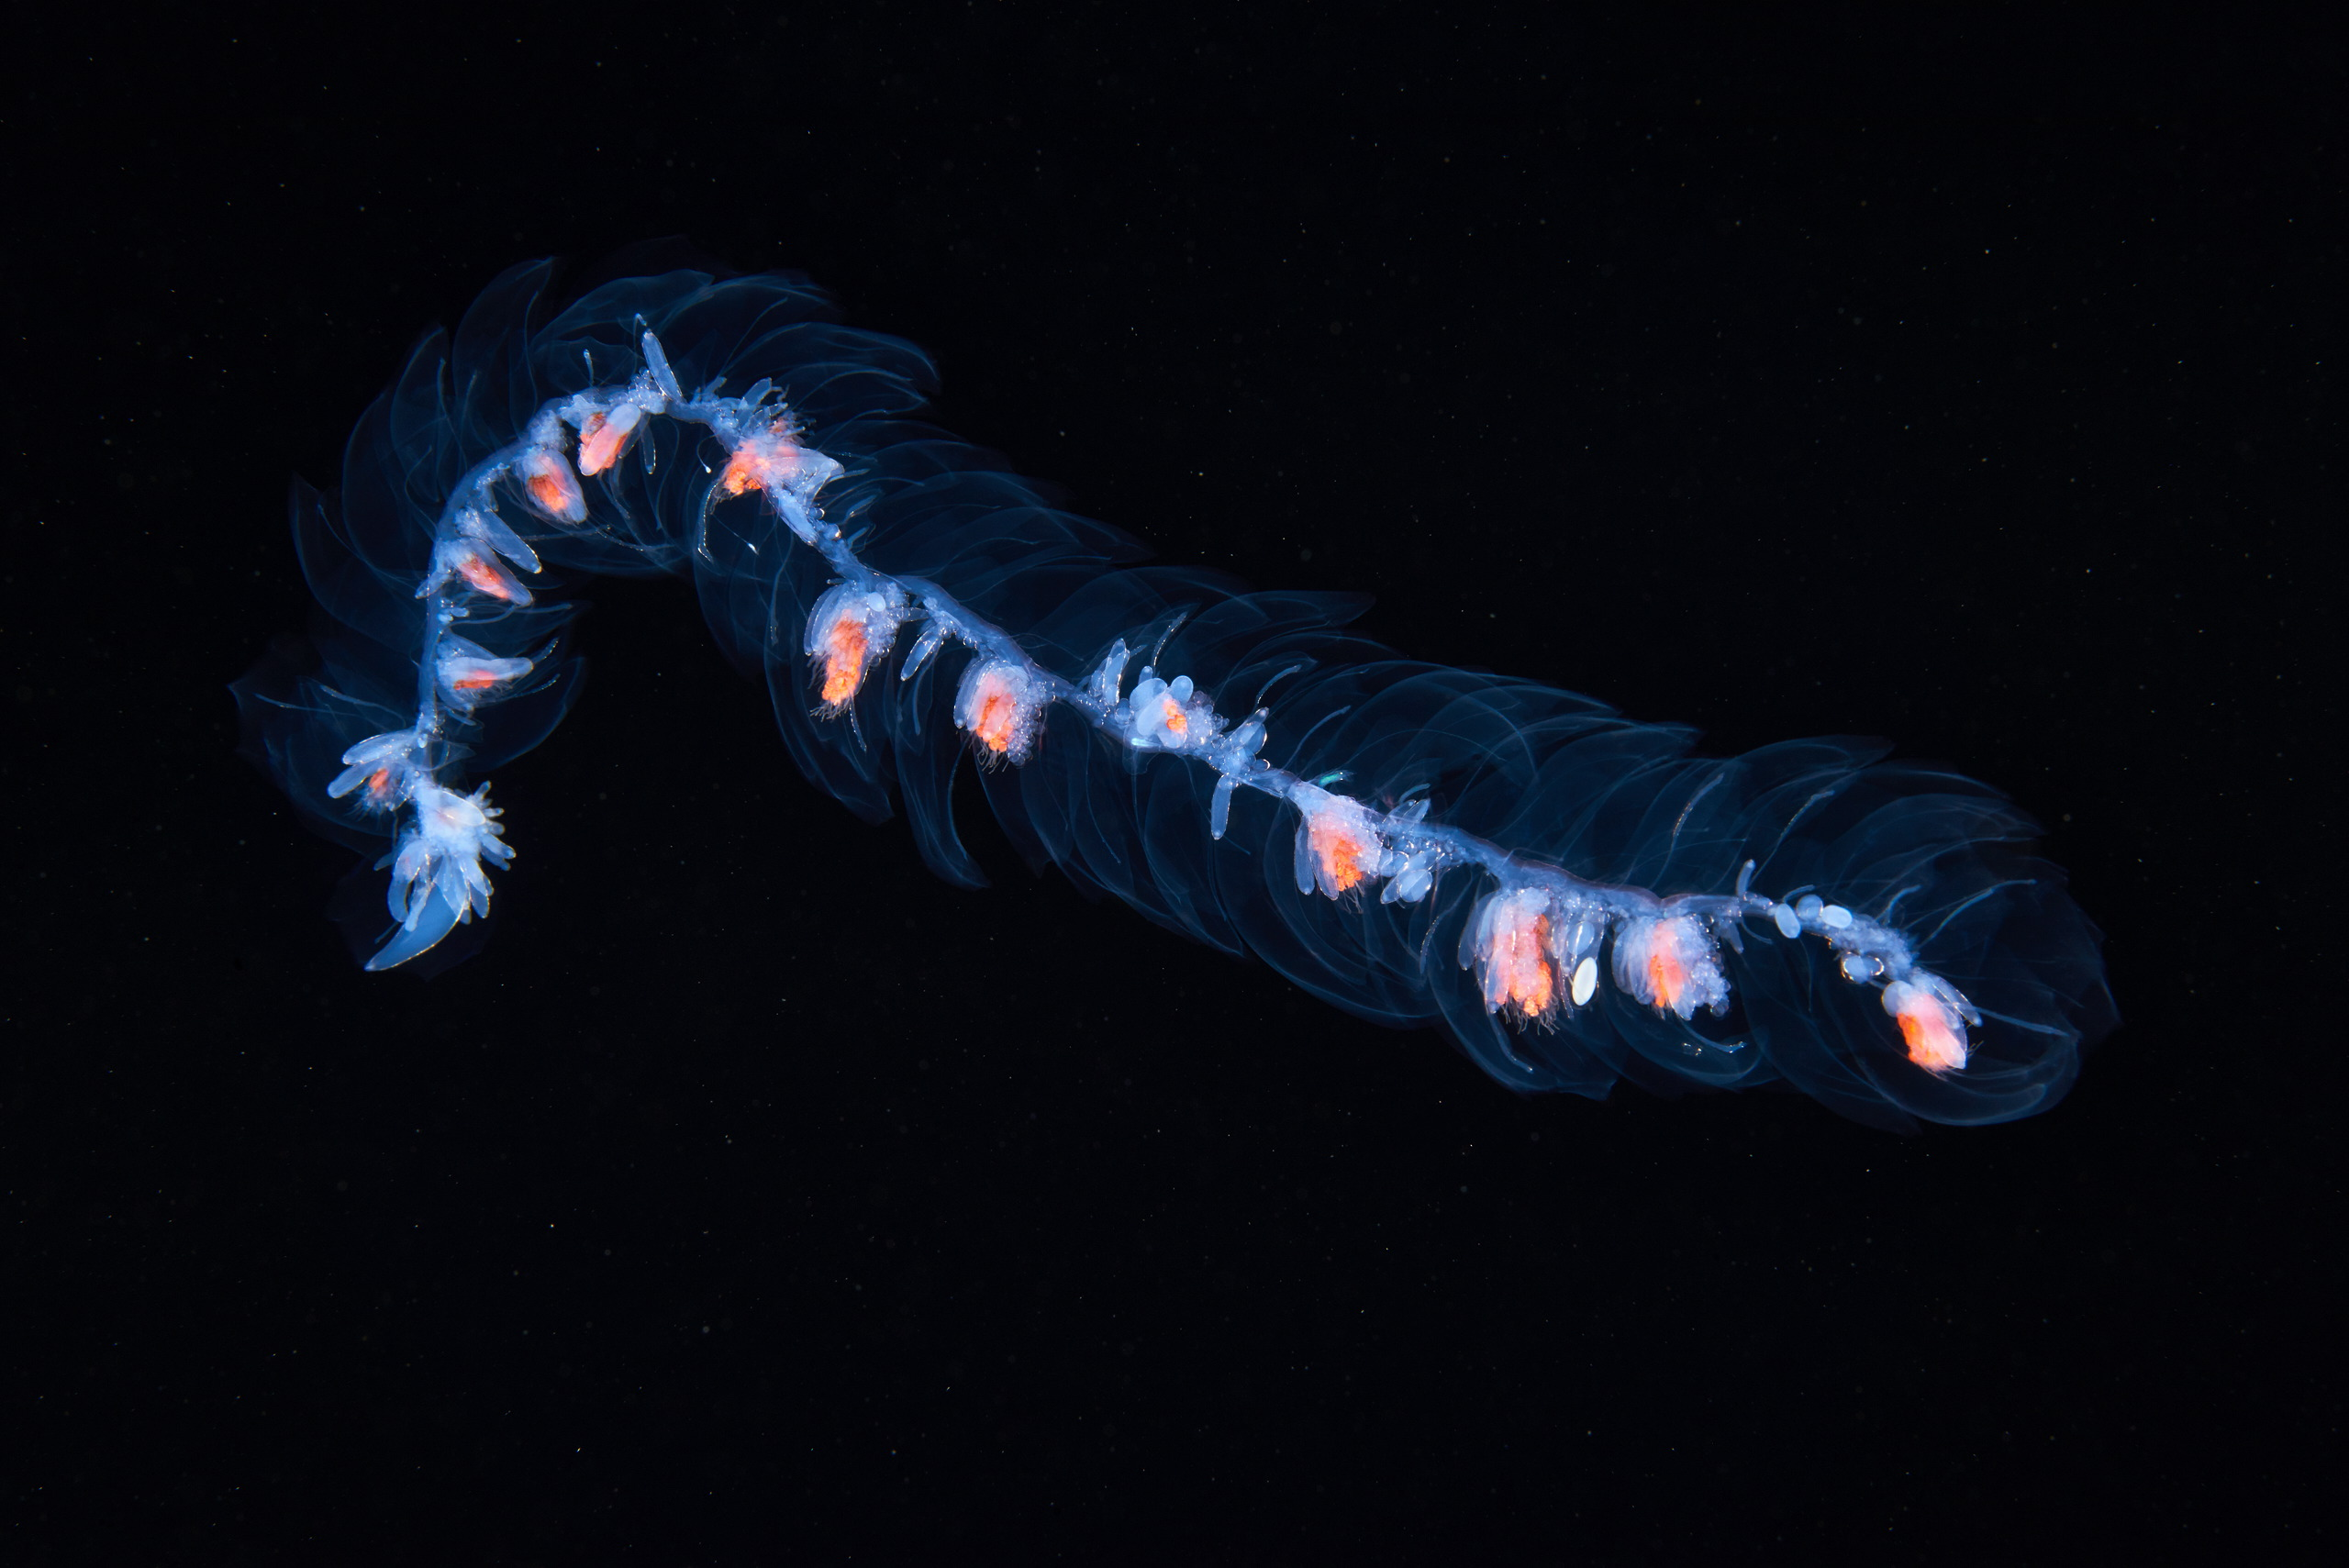 Siphonophore unidentified 1